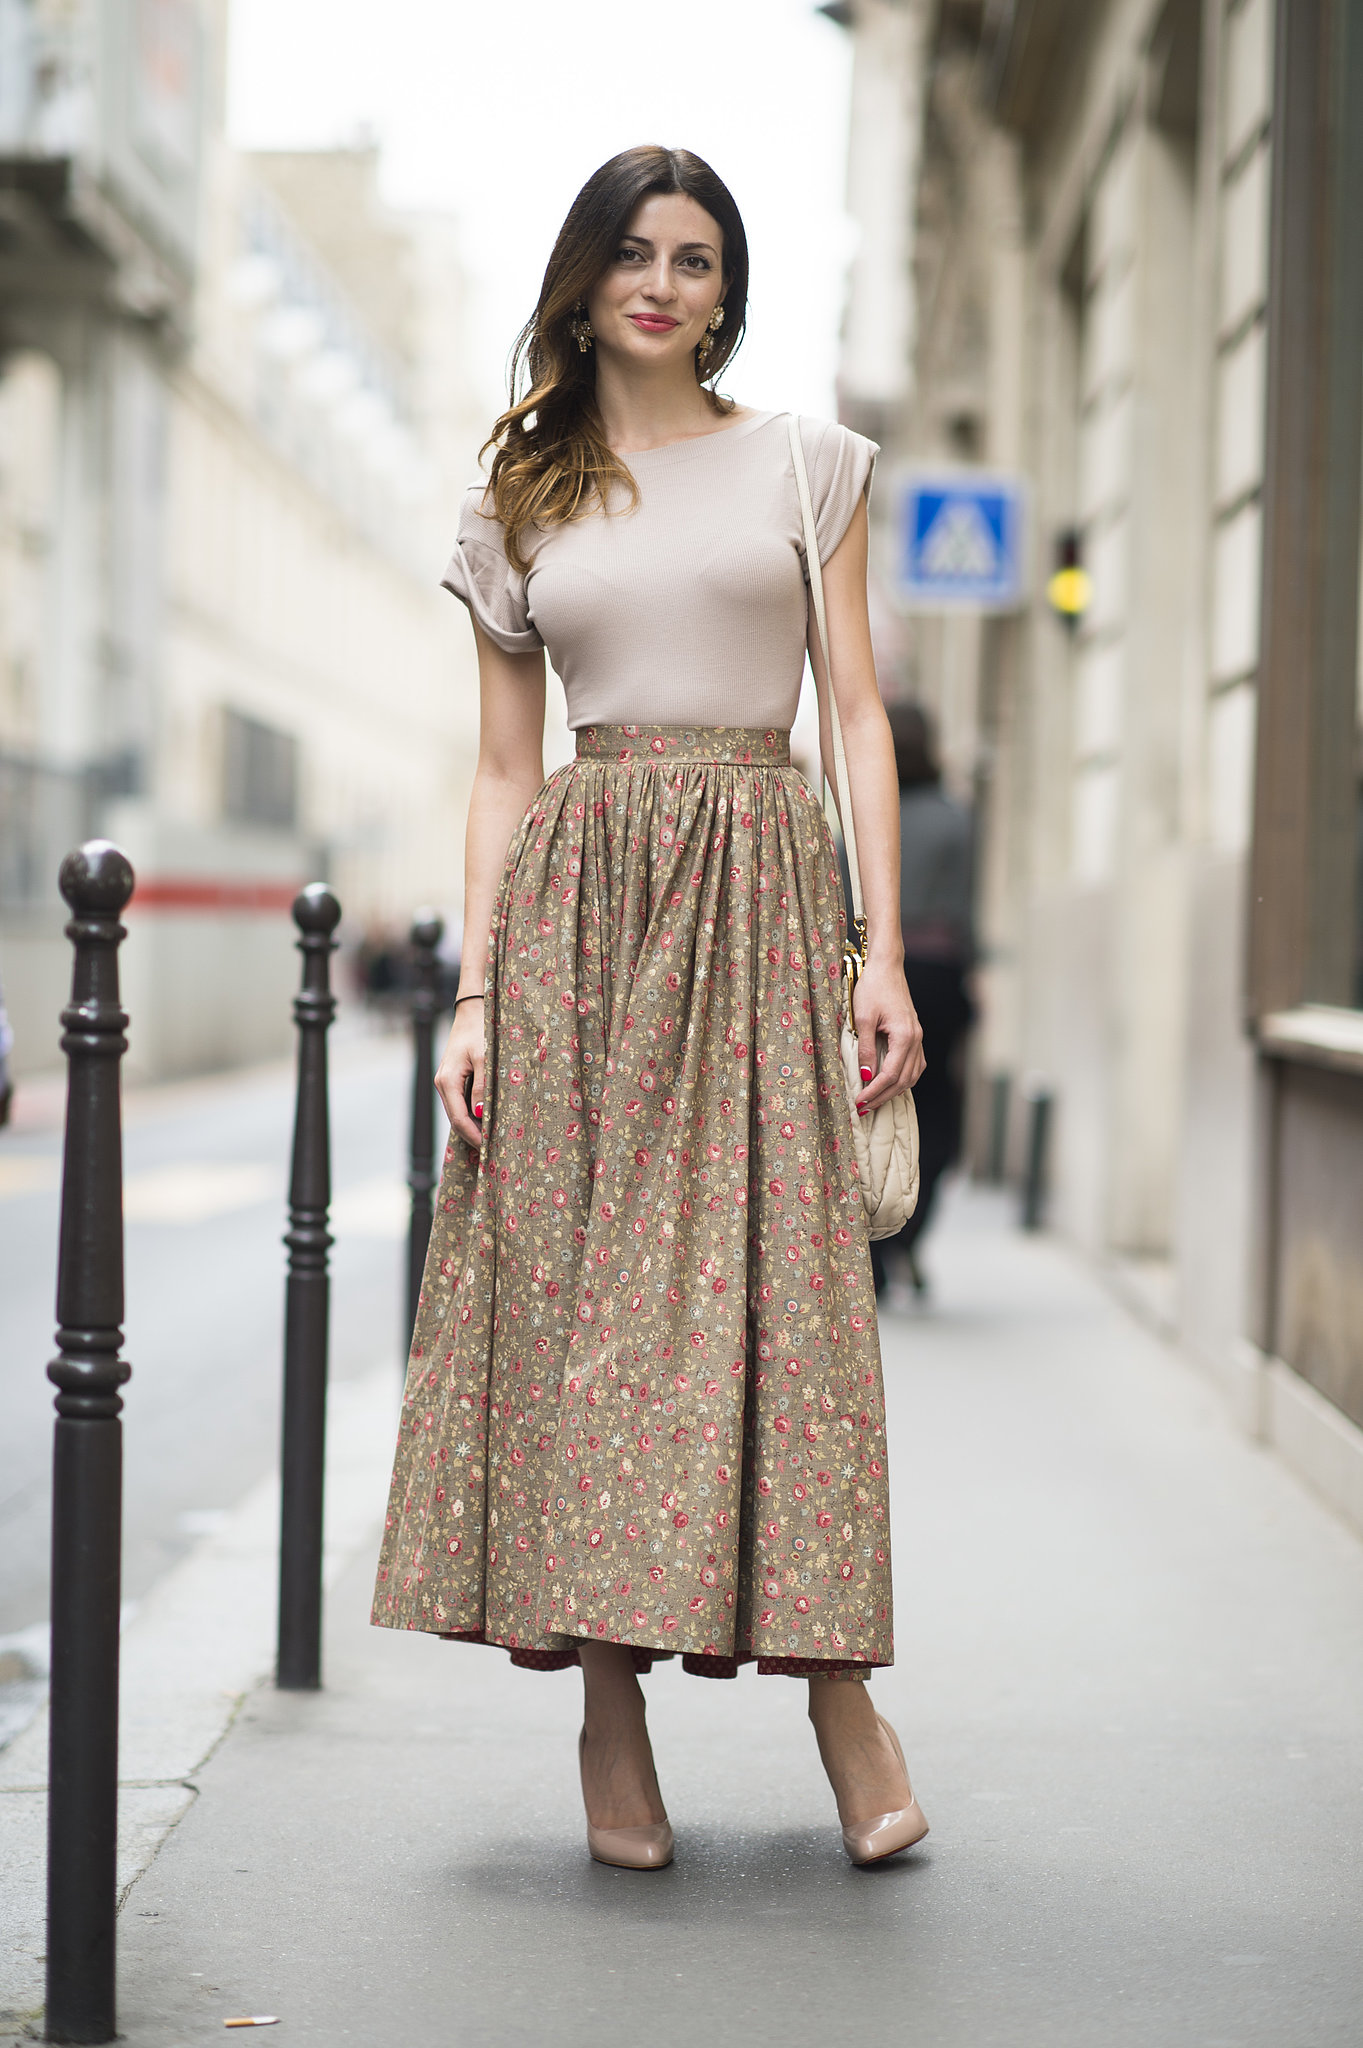 A billowy long skirt